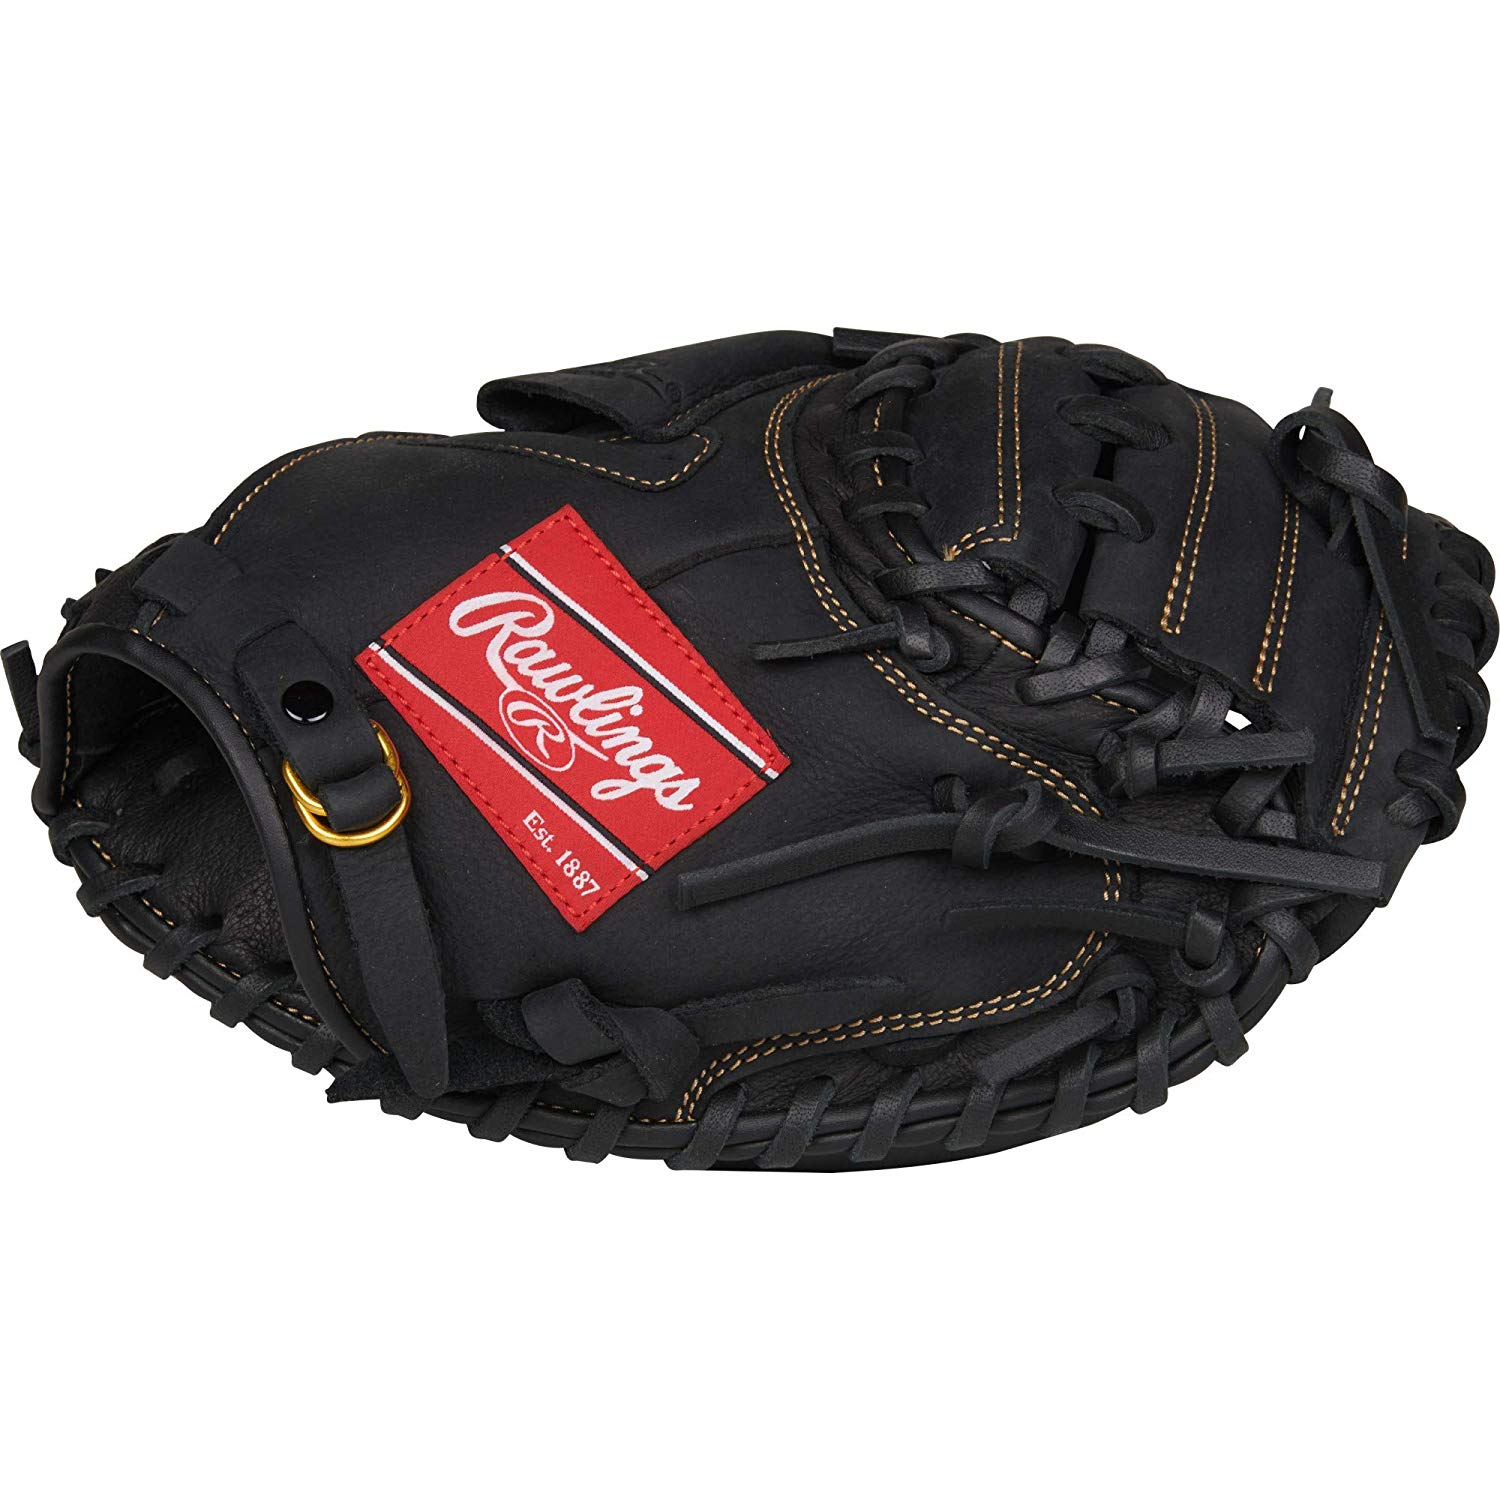 Rawlings Renegade Baseball/ Softball Glove Series